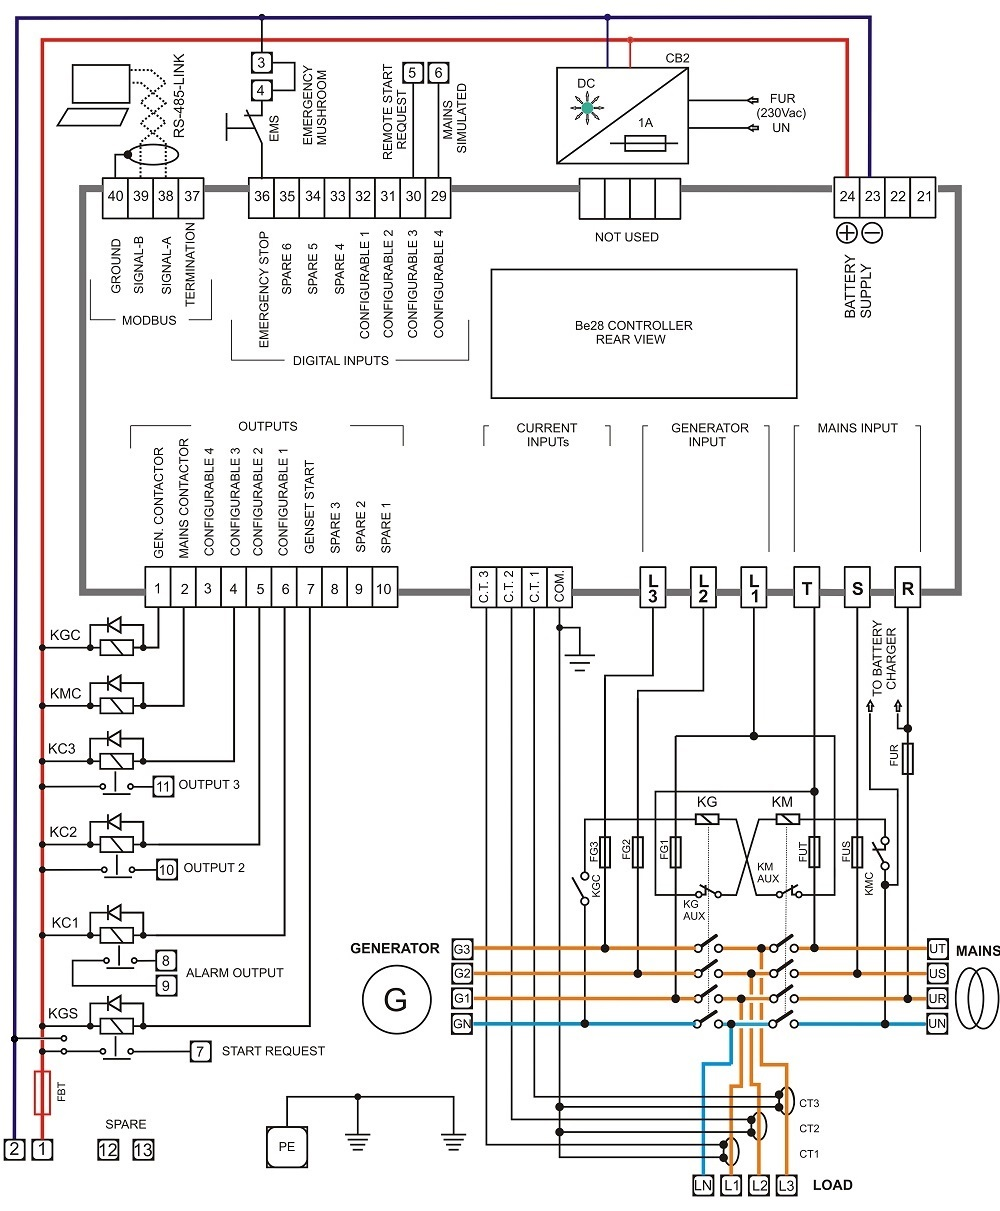 Wiring Diagram For Onan Generator Control Panel Schematics Ats Diagrams Diagramonan Libraryats Genset Controller